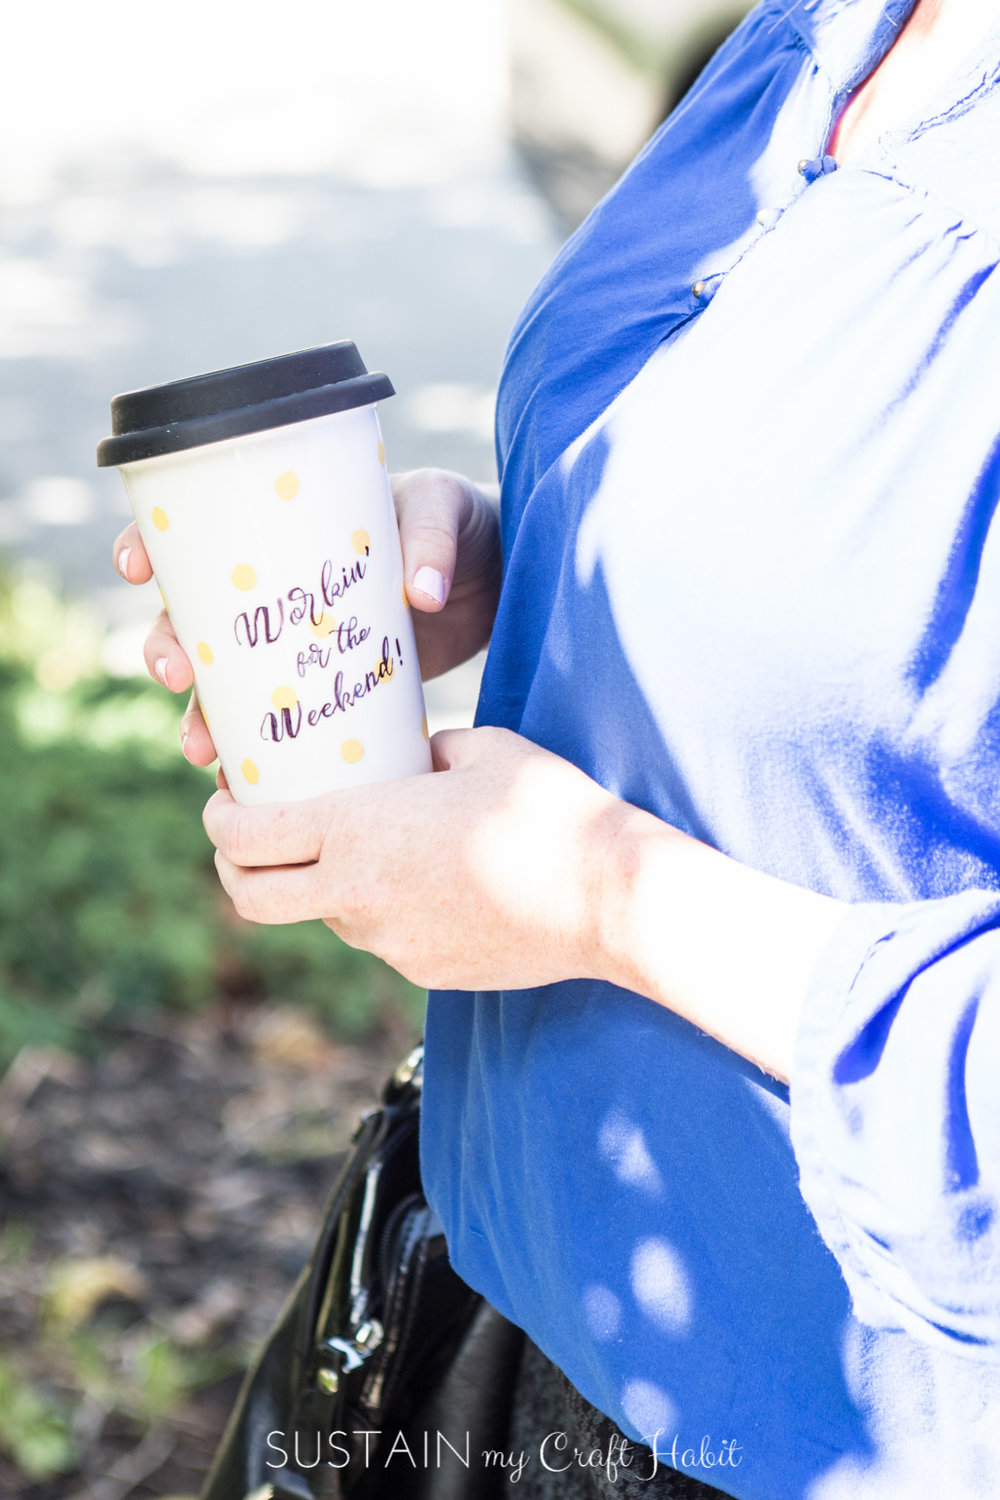 Upcycle your own plain travel mug with your favourite motivational saying. Easy step-by-step tutorial for this DIY idea.